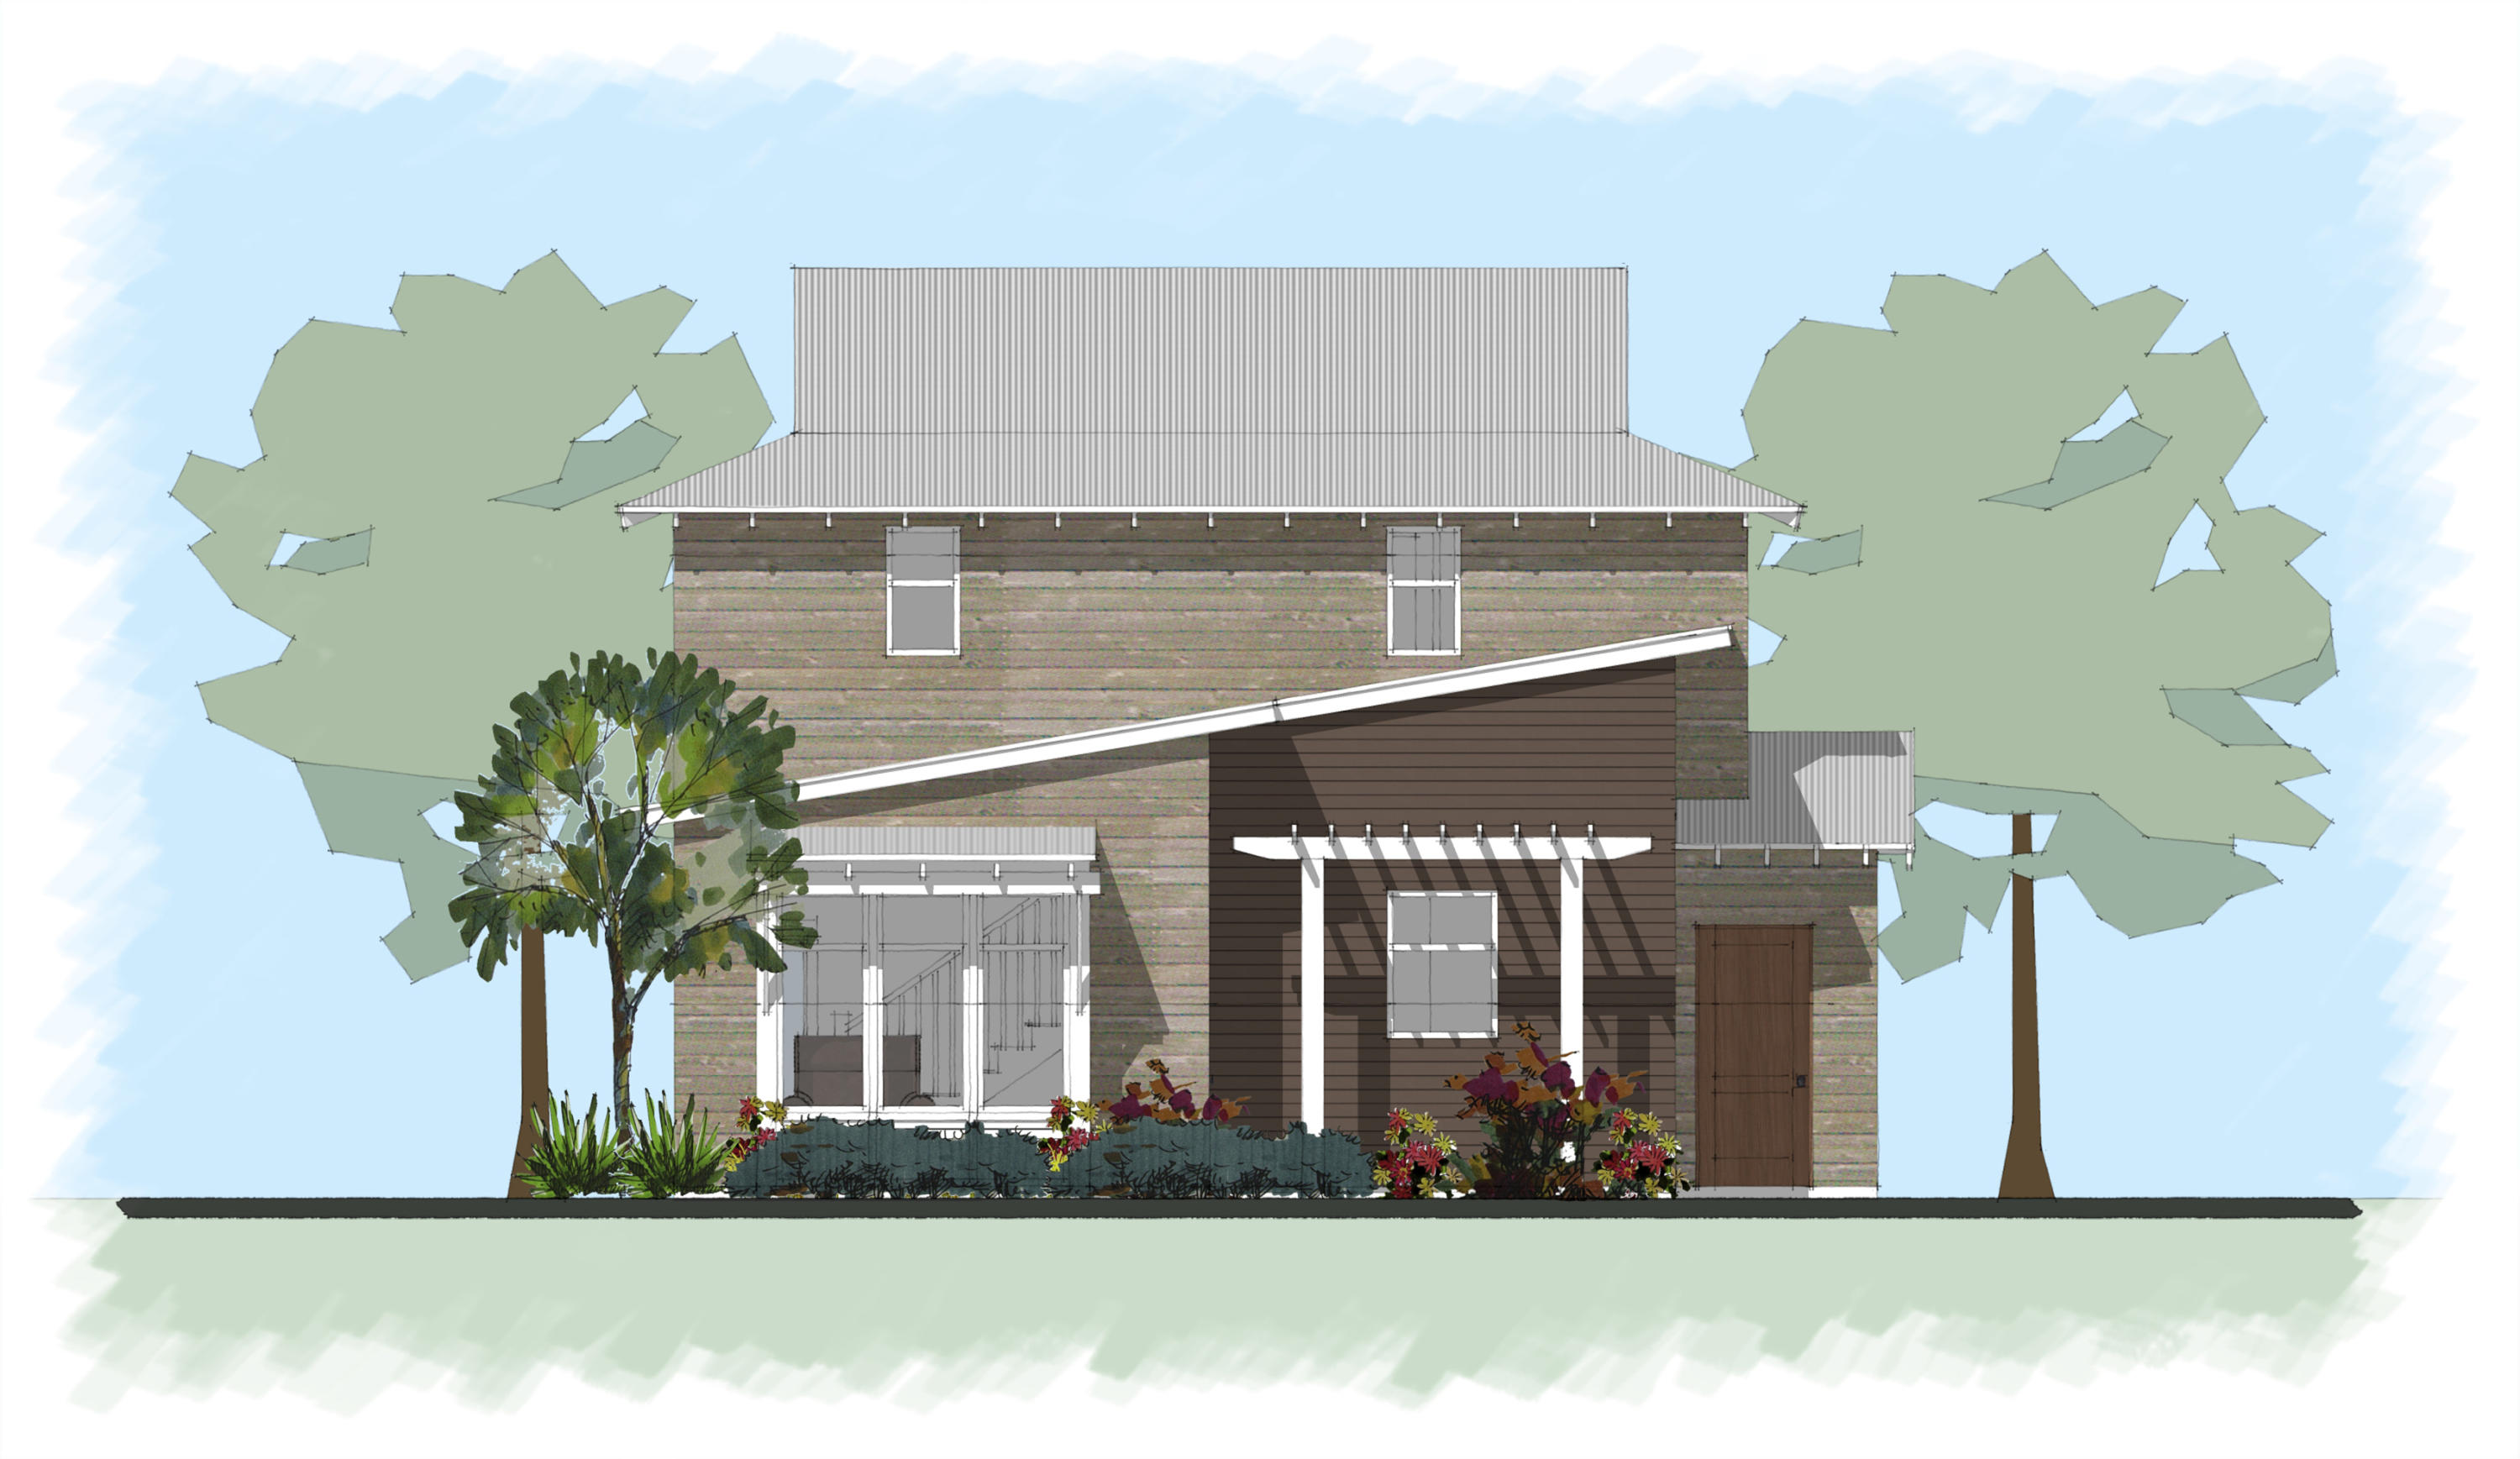 $15,725 preconstruction incentive discount will be yours if you are one of the first 5 Buyers in Eden's Landing. ONLY ONE discount is left! Don't miss out! You can choose to apply $15,725 (5% of list price) to the Purchase Price, or cover your closing costs. But don't delay! Enjoy all the advantages of South Walton's Next Generation Homes.Brand-new homes in Historic Point Washington, thoughtfully designed for today's families.Enjoy the privileges of living the good life as a local. Open floor plan and outdoor ''rooms'' are part of the way you want to live NOW. The Morgan floor plan has flexibility built in. The en suite Master Bedroom is on the first level. The second level offers a second room for which you can use the use -- living, bedroom, media room, etc Relax by the neighborhood pool with friends and family. Eden's Landing does not allow short-term rentals, so no noisy check-in/check-out days to disturb your tranquility. Tucked away from the tourist traffic and hassles, Eden's Landing is still a straight 5-minute drive down County 395 to CR30A and Publix, Watercolor, Seagrove Beach, dining and entertainment. The public boat launch is just a few minutes up County Road 395. This home is to-be-built. Build time is approximately six months. Please confirm all information. First 5 Buyers will receive 5%off Purchase Price, or Seller will pay 5% of Purchase Price toward closing costs. Long-term rental forecast is $2,300/month. Ask about special financing!